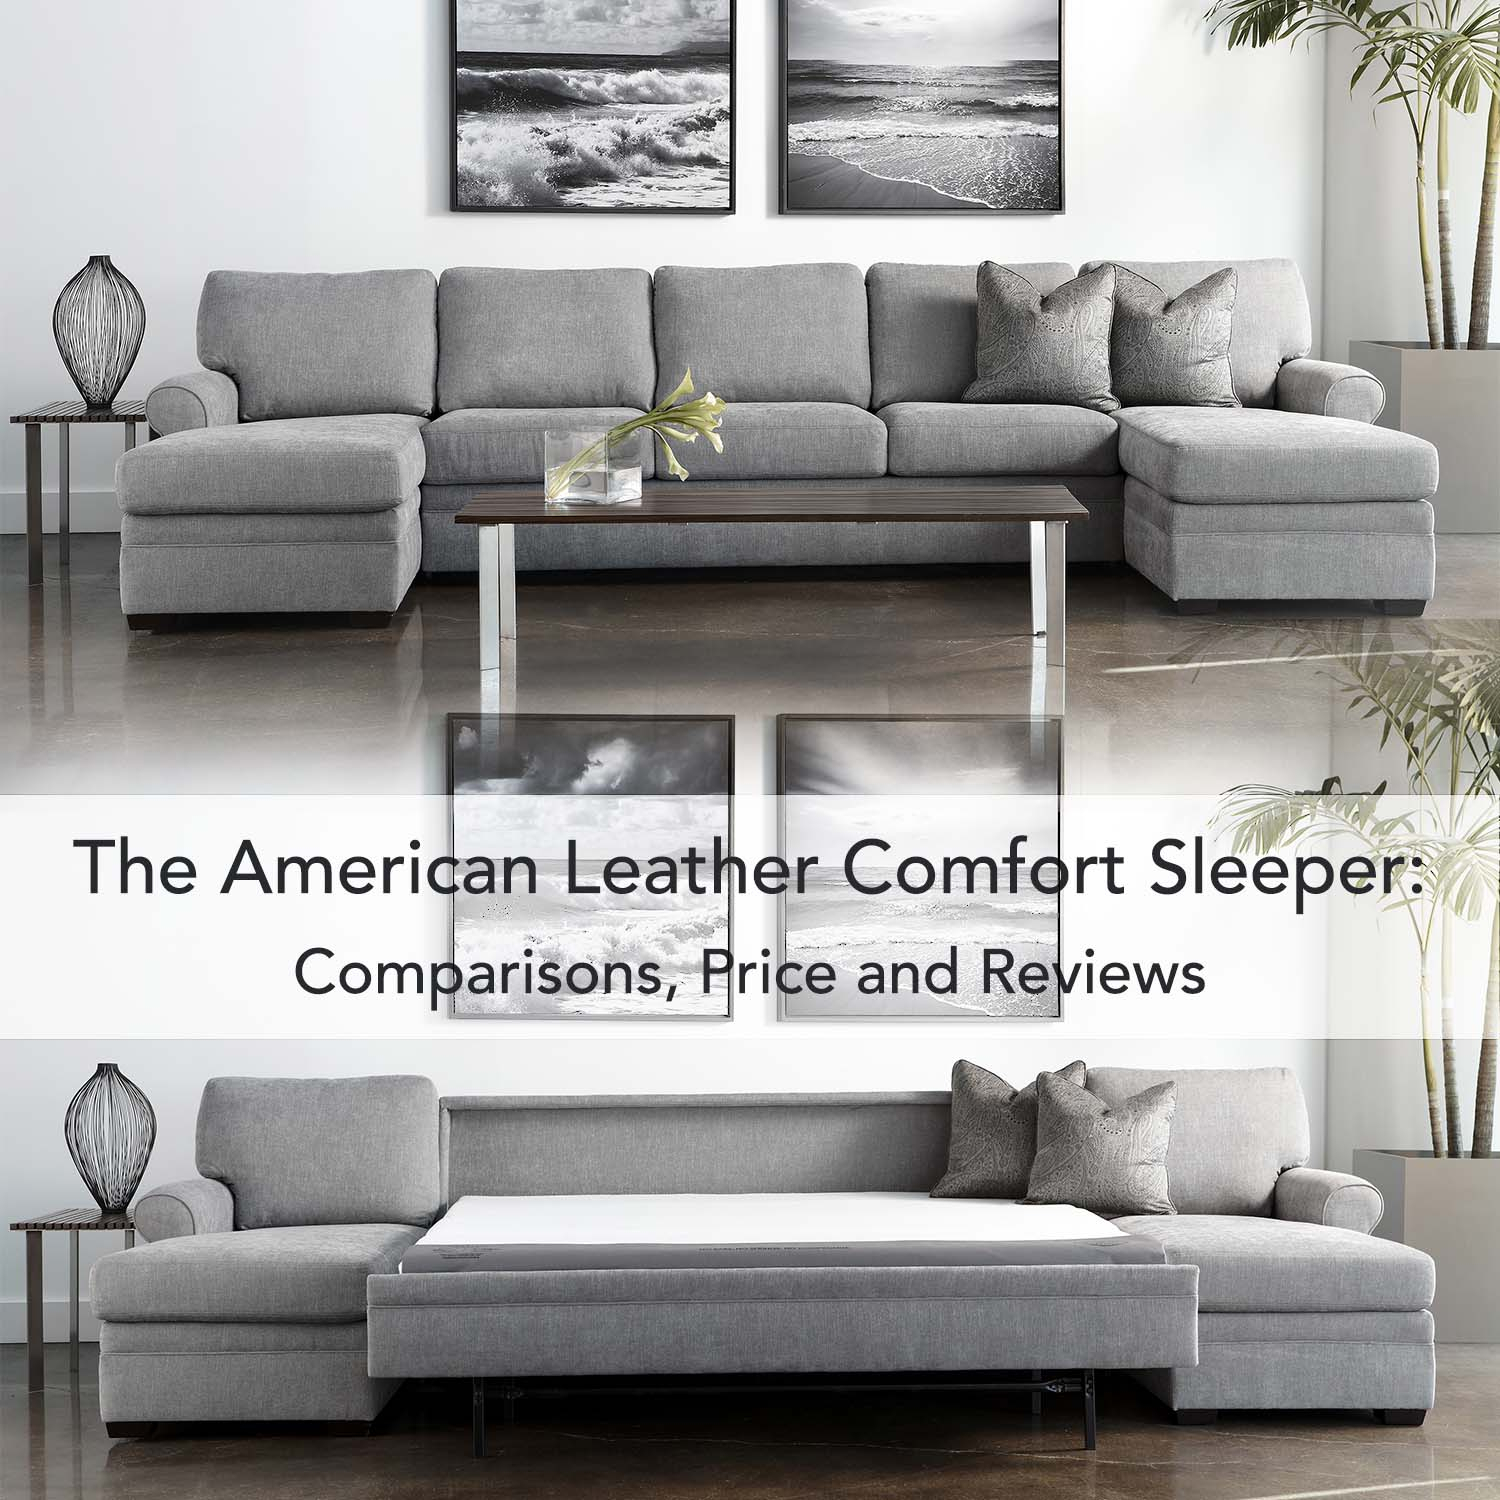 American Leather Comfort Sleeper: What To Know Before You Buy Within Gina Blue Leather Sofa Chairs (Image 1 of 25)